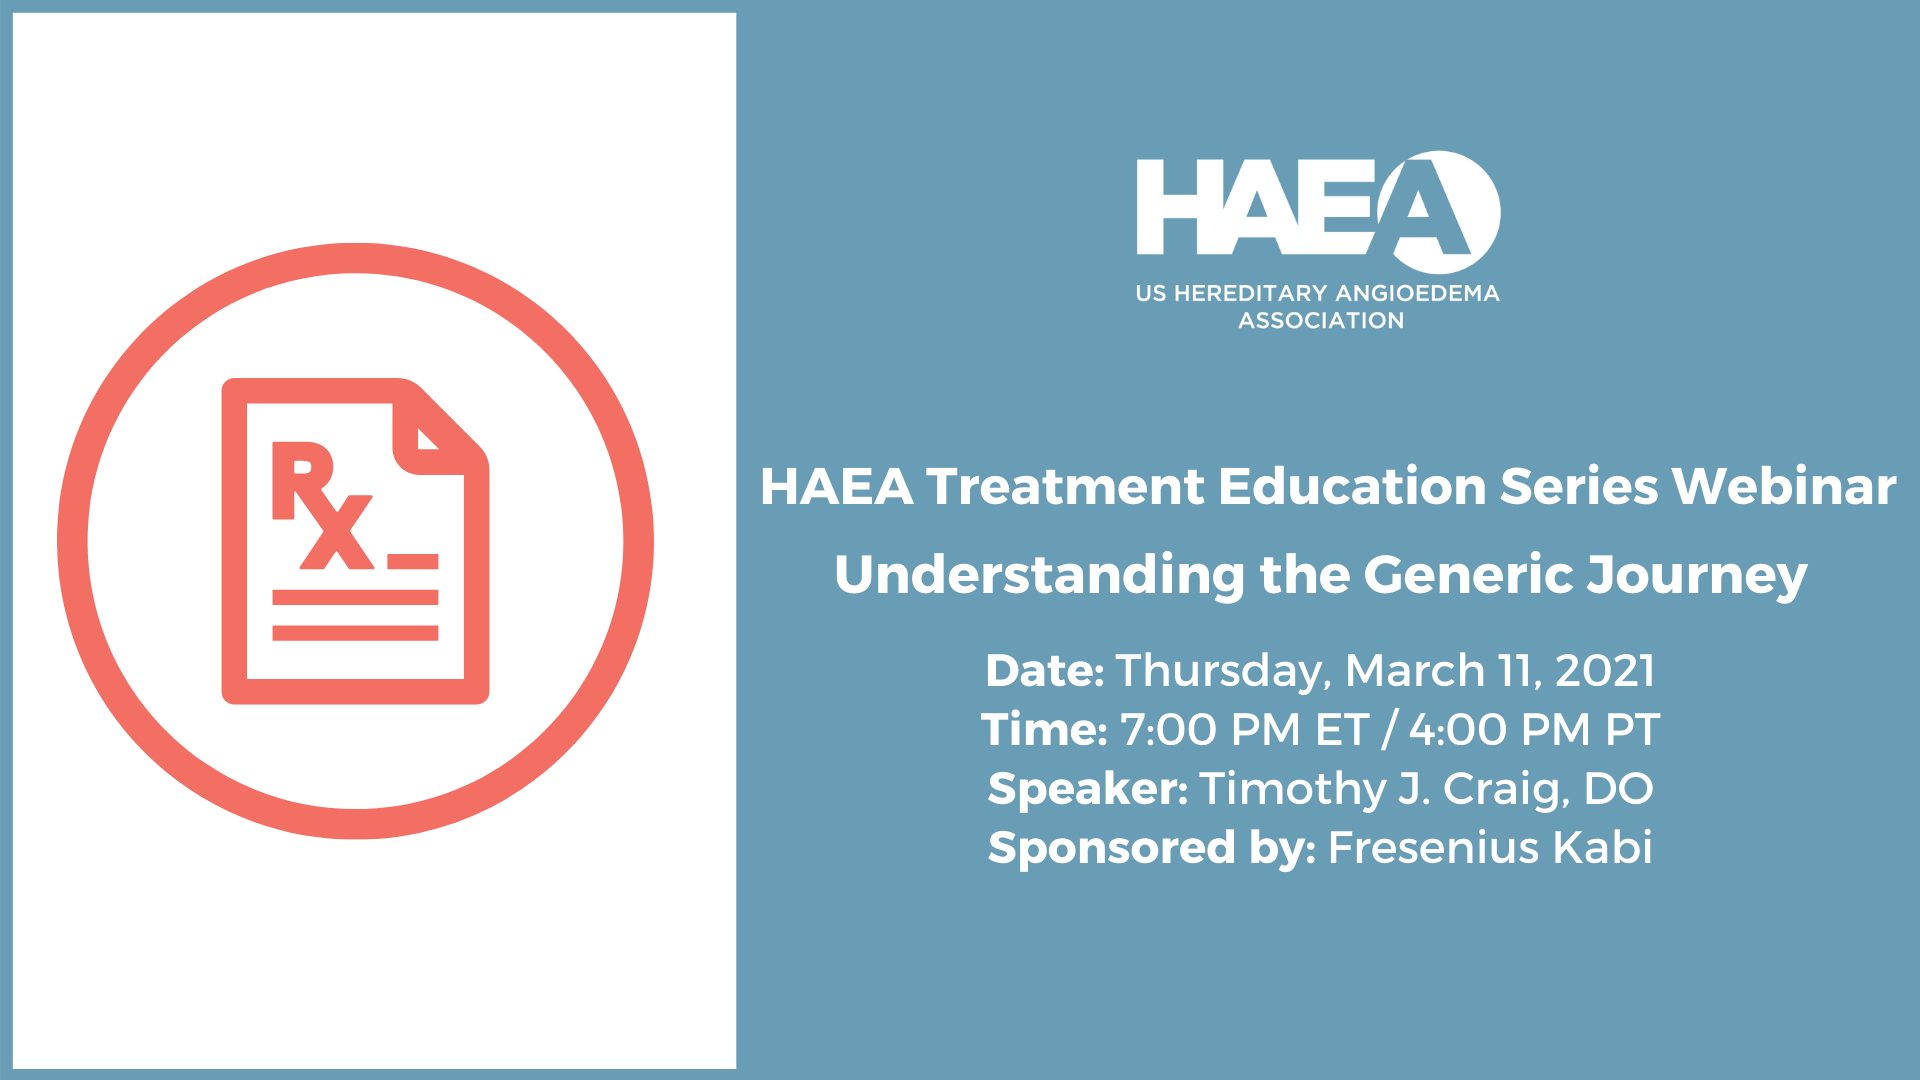 HAEA Treatment Education Series Webinar: Understanding the Generic Journey